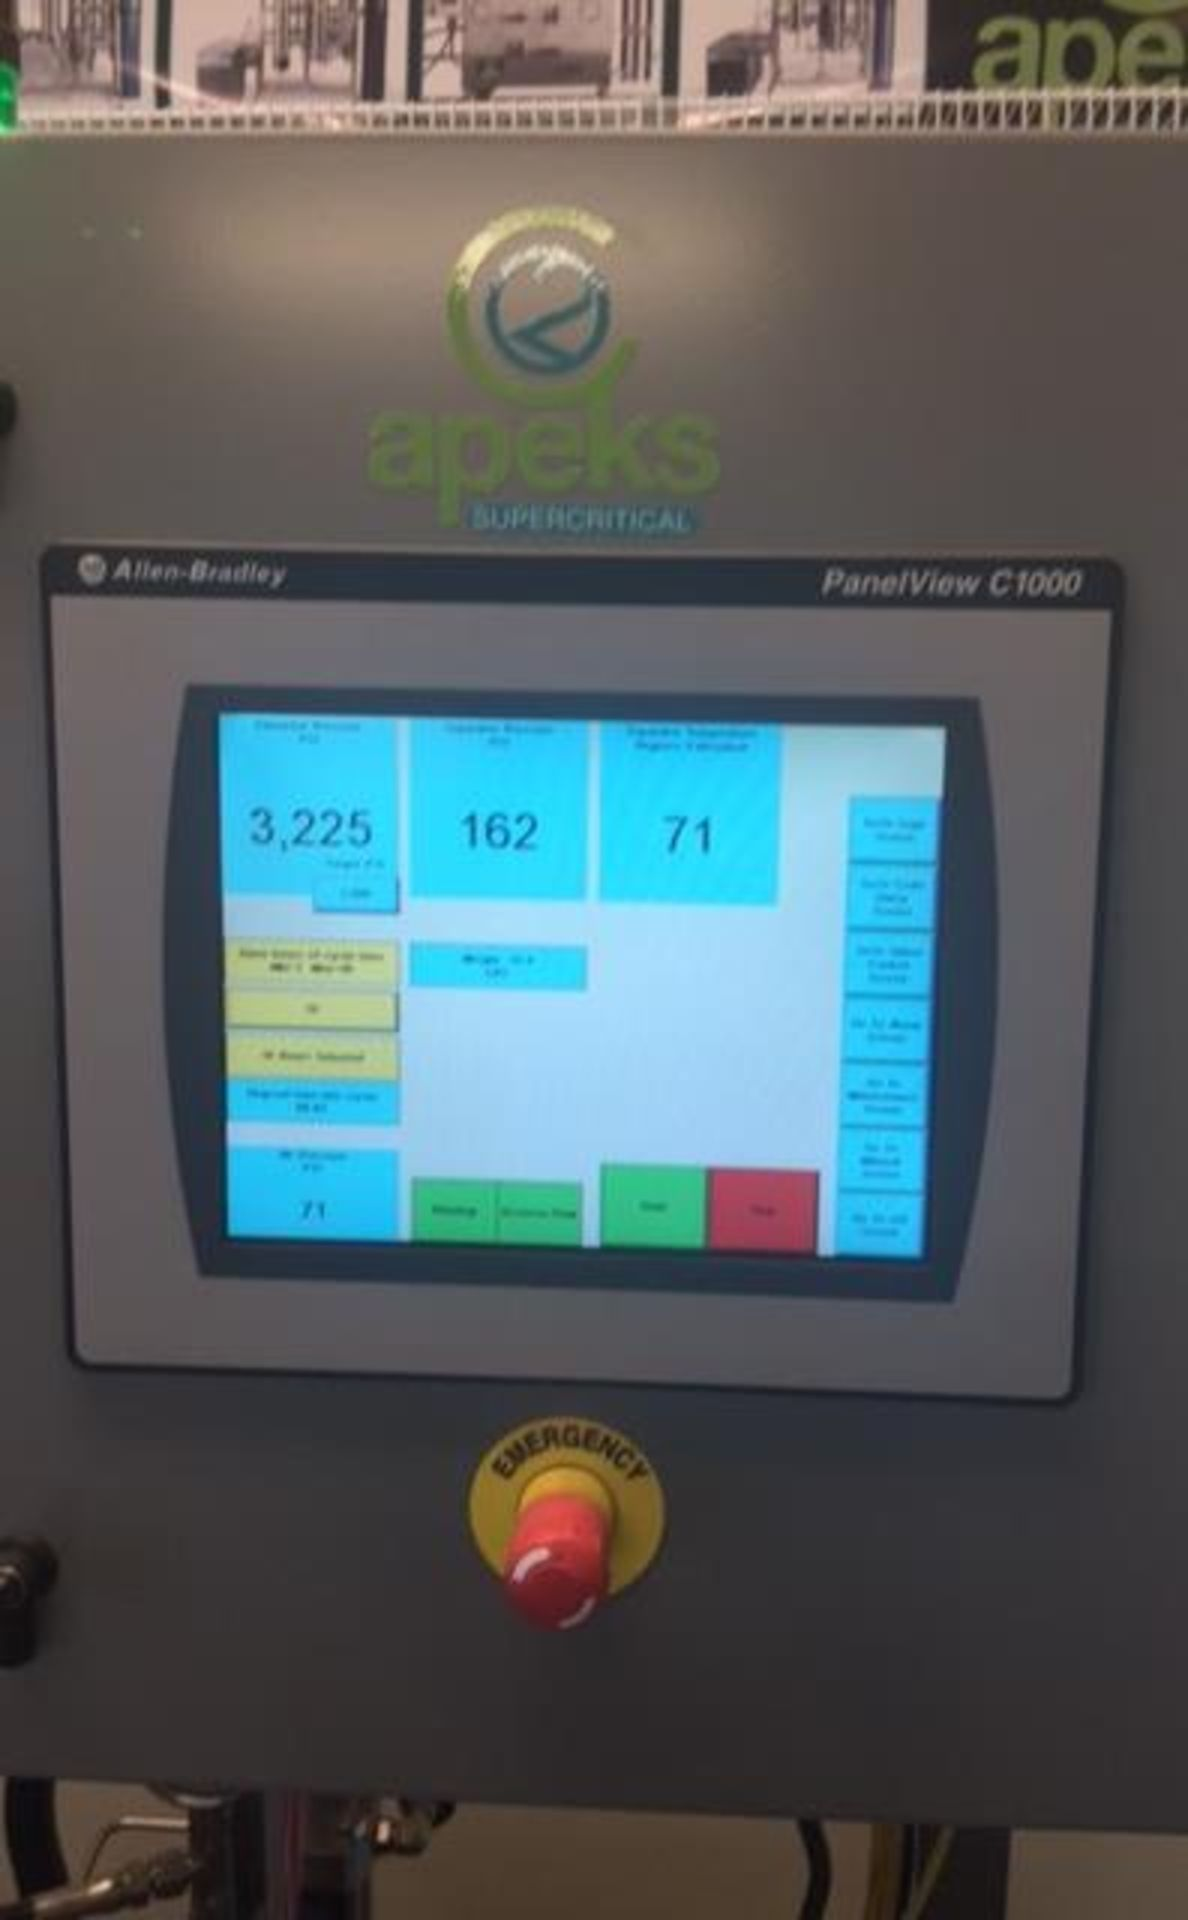 Used-Apeks 2x 5L 5000 PSI 5L Extraction System. Holds up to 3 lbs of dry/ground material - Image 4 of 6